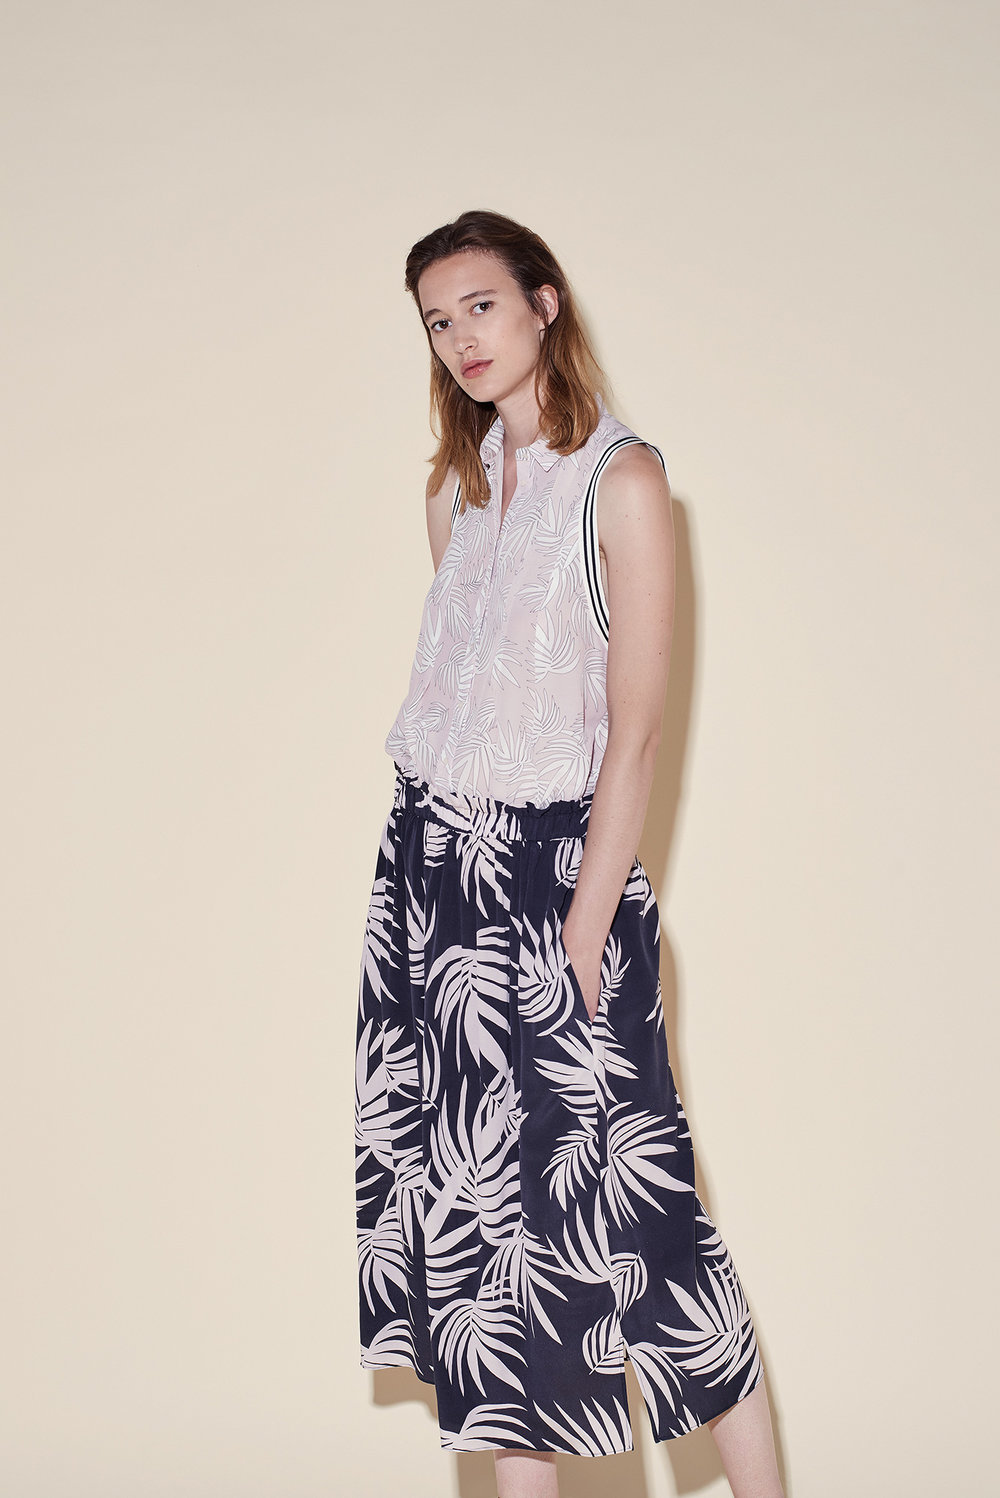 Sleeveless blouse silk crepe tropical pink – Long skirt crepe silk tropical black